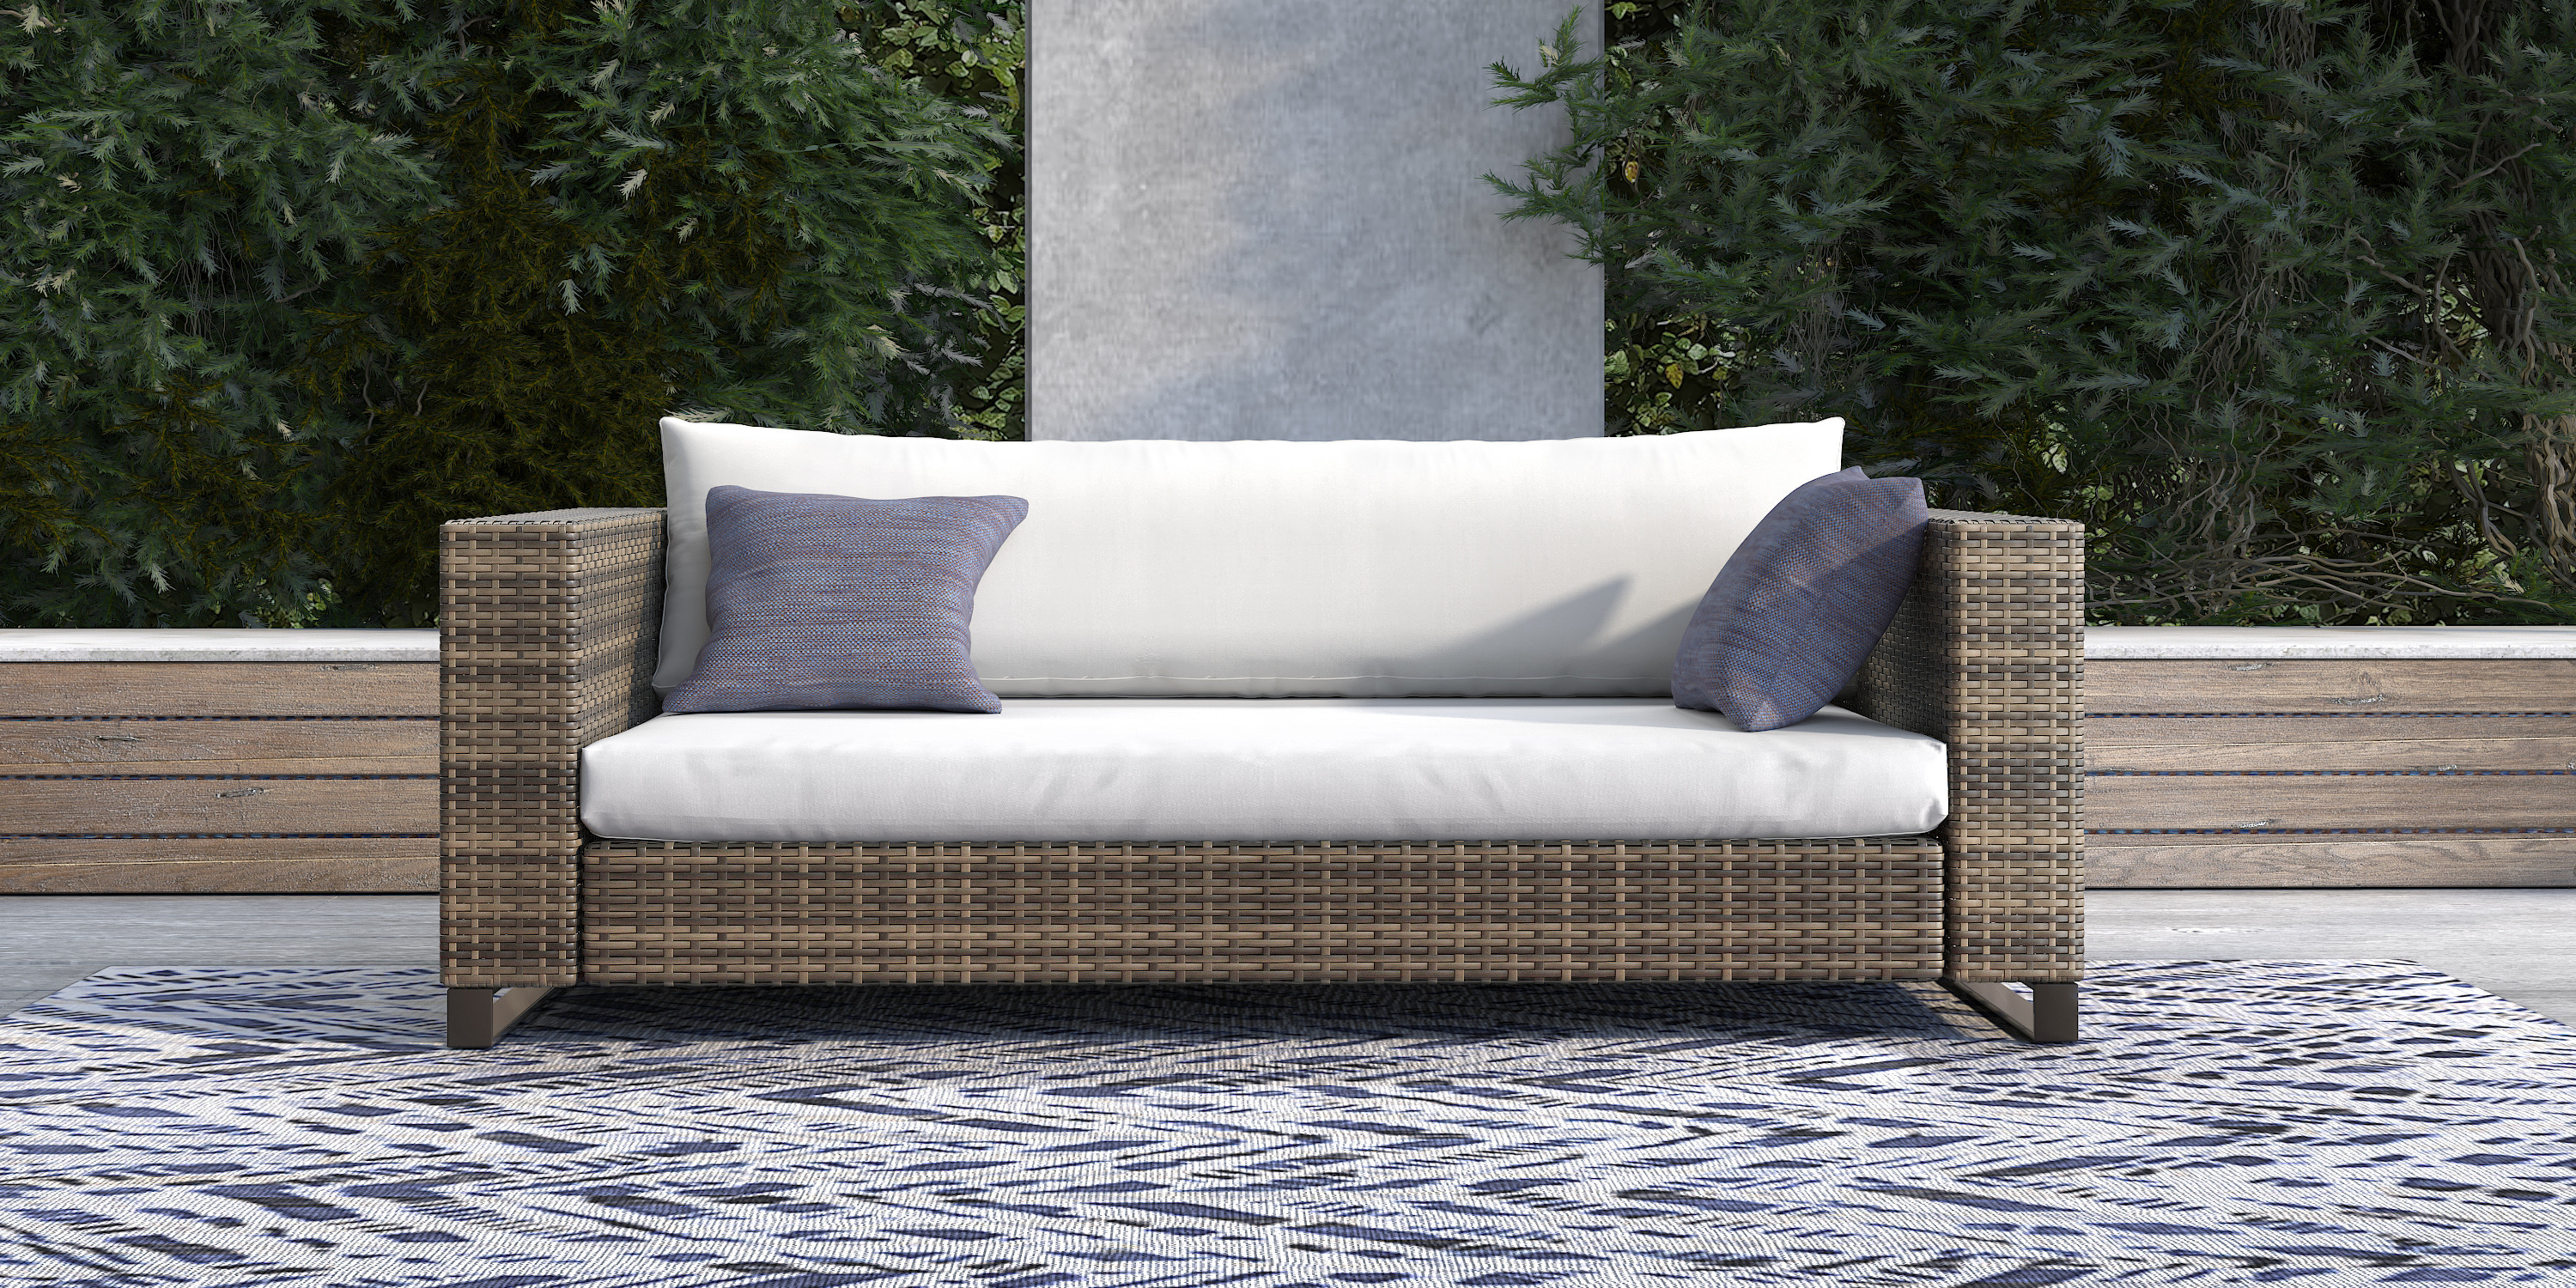 Most Recent Oceanside Outdoor Wicker Loveseat With Cushions Throughout Kentwood Resin Wicker Loveseats (View 8 of 20)